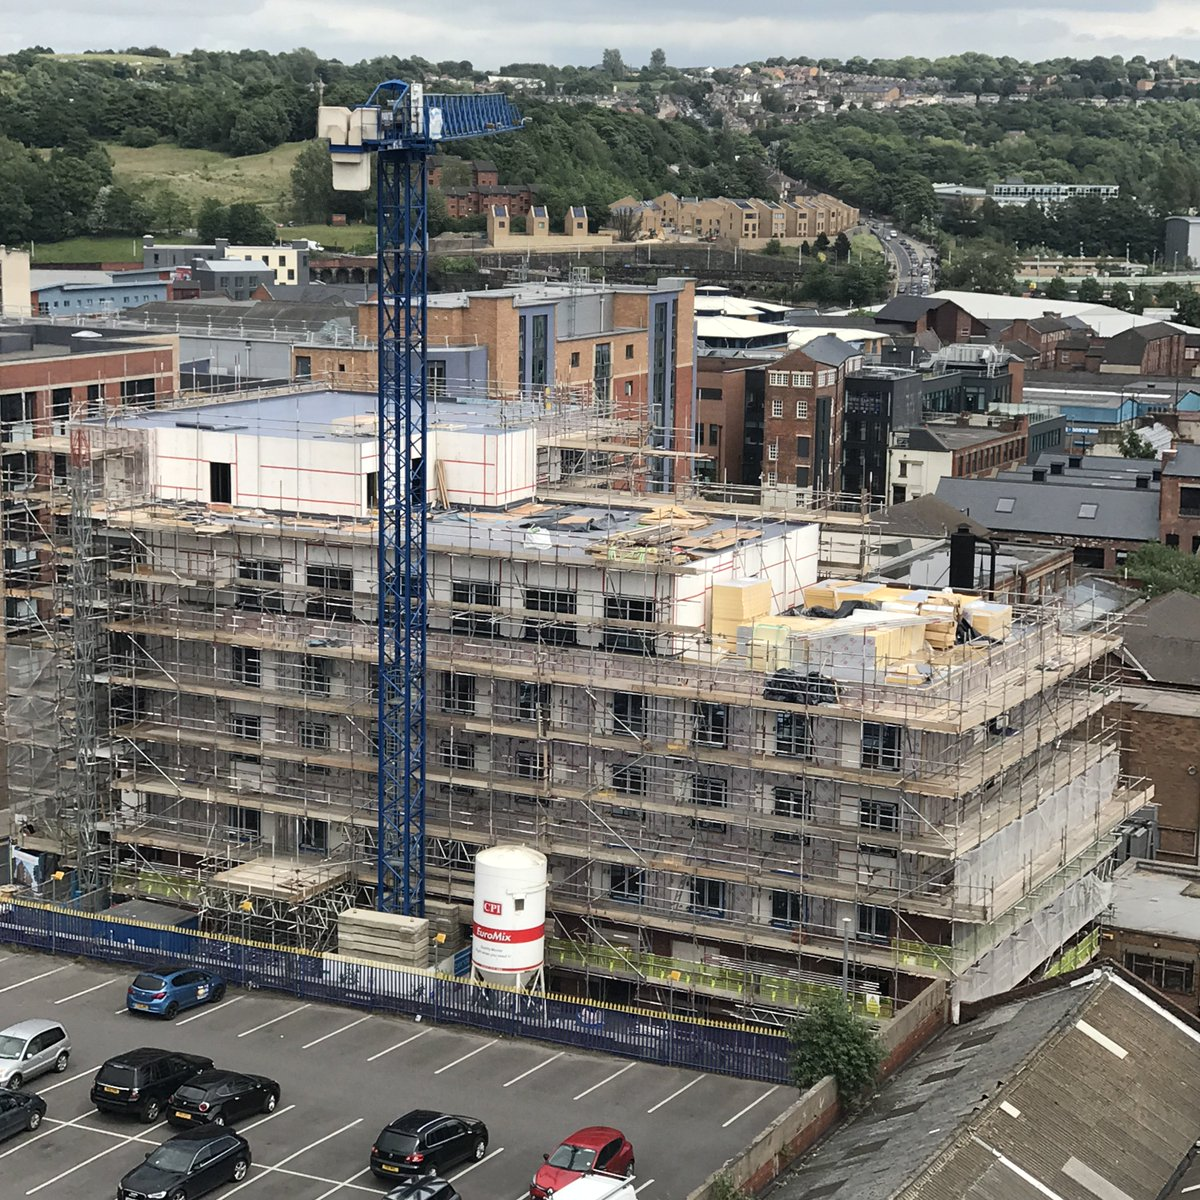 Great #onsite #aerialimagery of Hannah Court #StudentLiving dev in CIQ #Sheffield @builtbybardsley @CurtinsConsult #Construction #architects<br>http://pic.twitter.com/WZfwCwtW7l